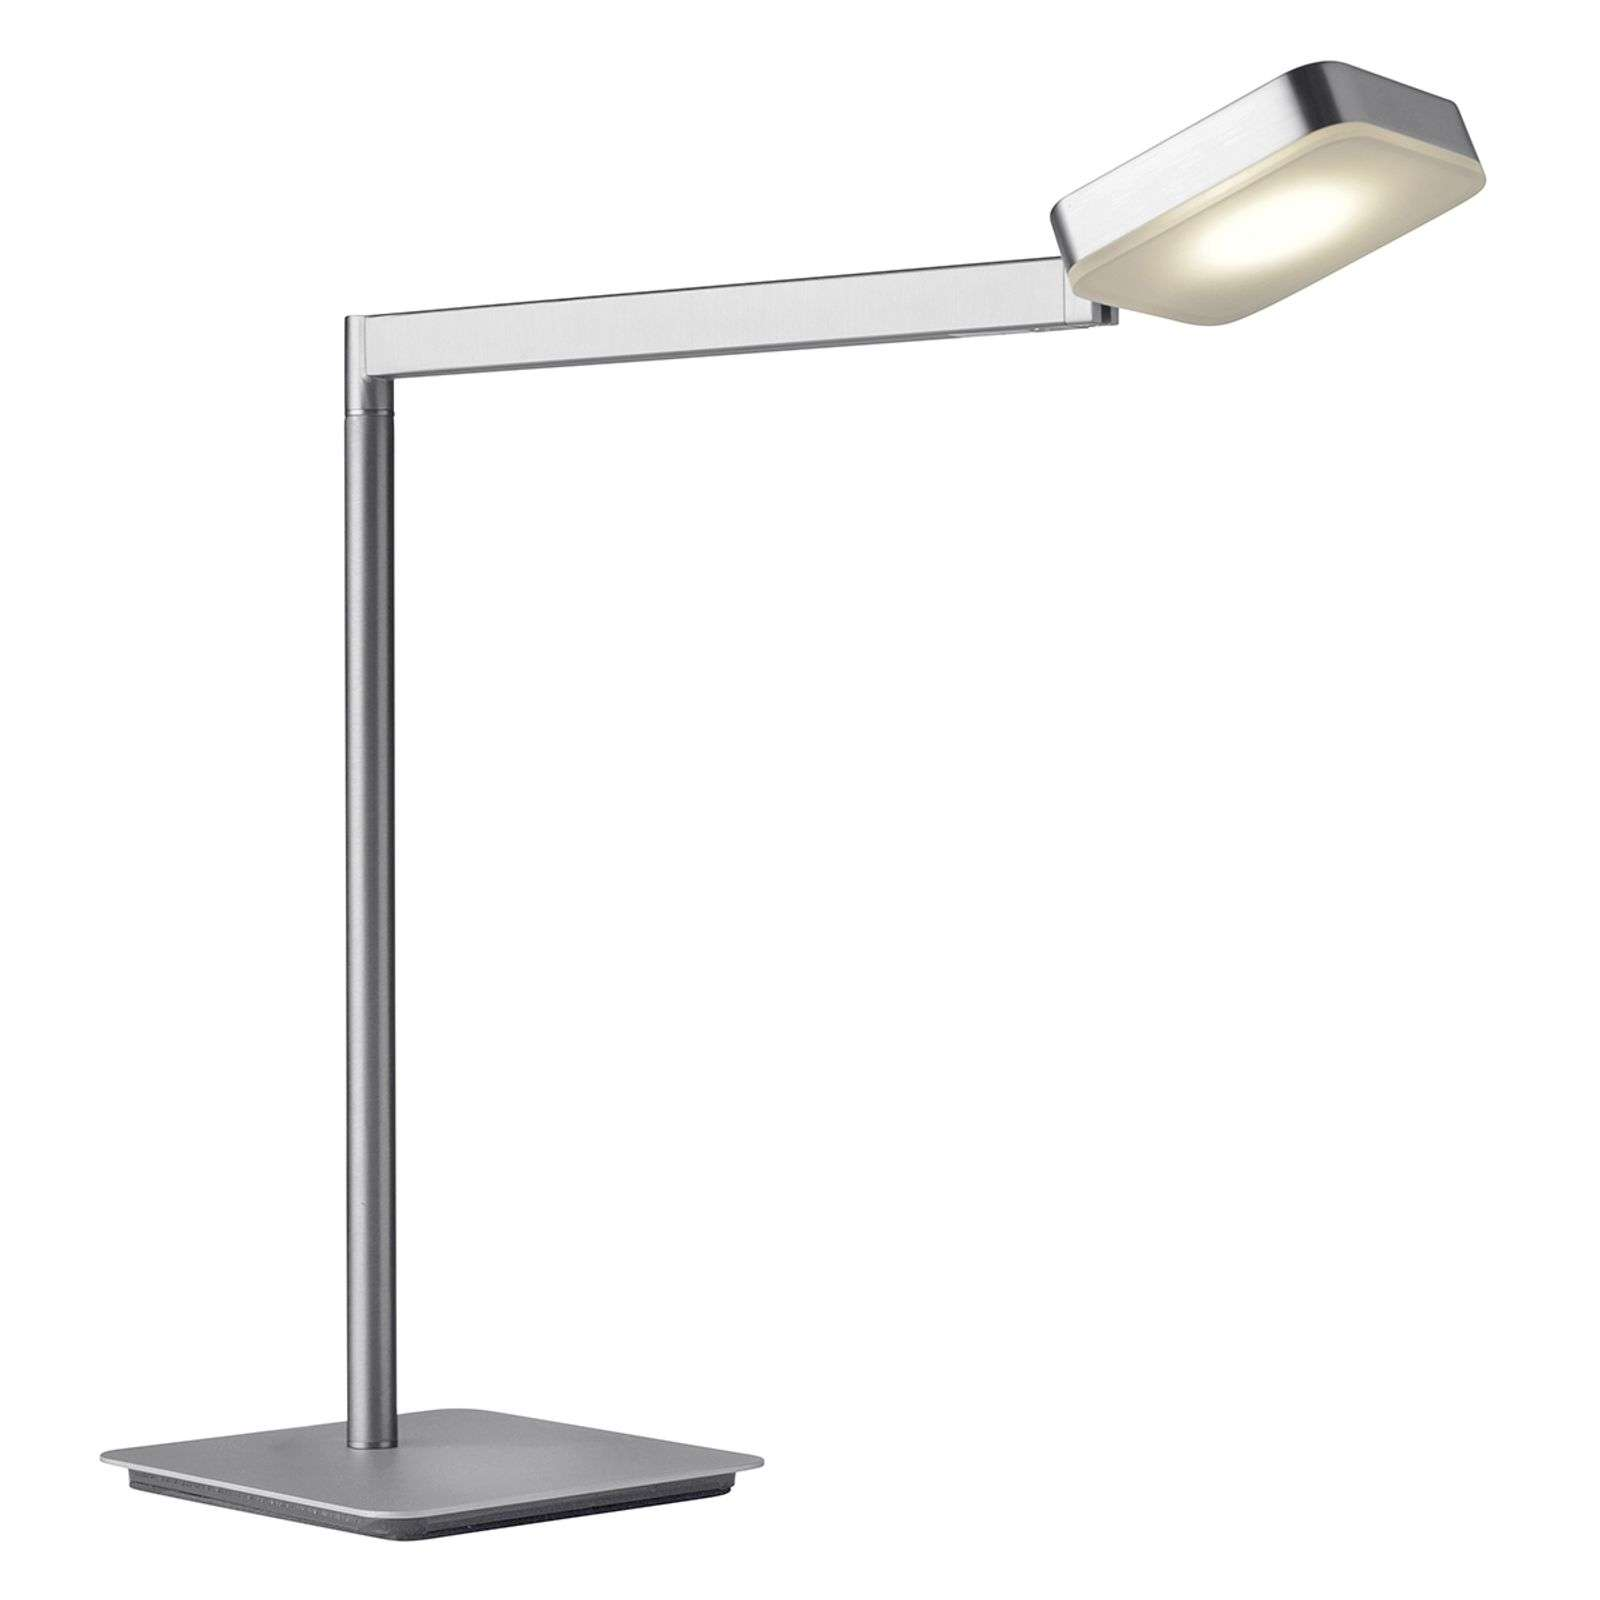 Lampe à poser LED Finesse carrée, dimmable